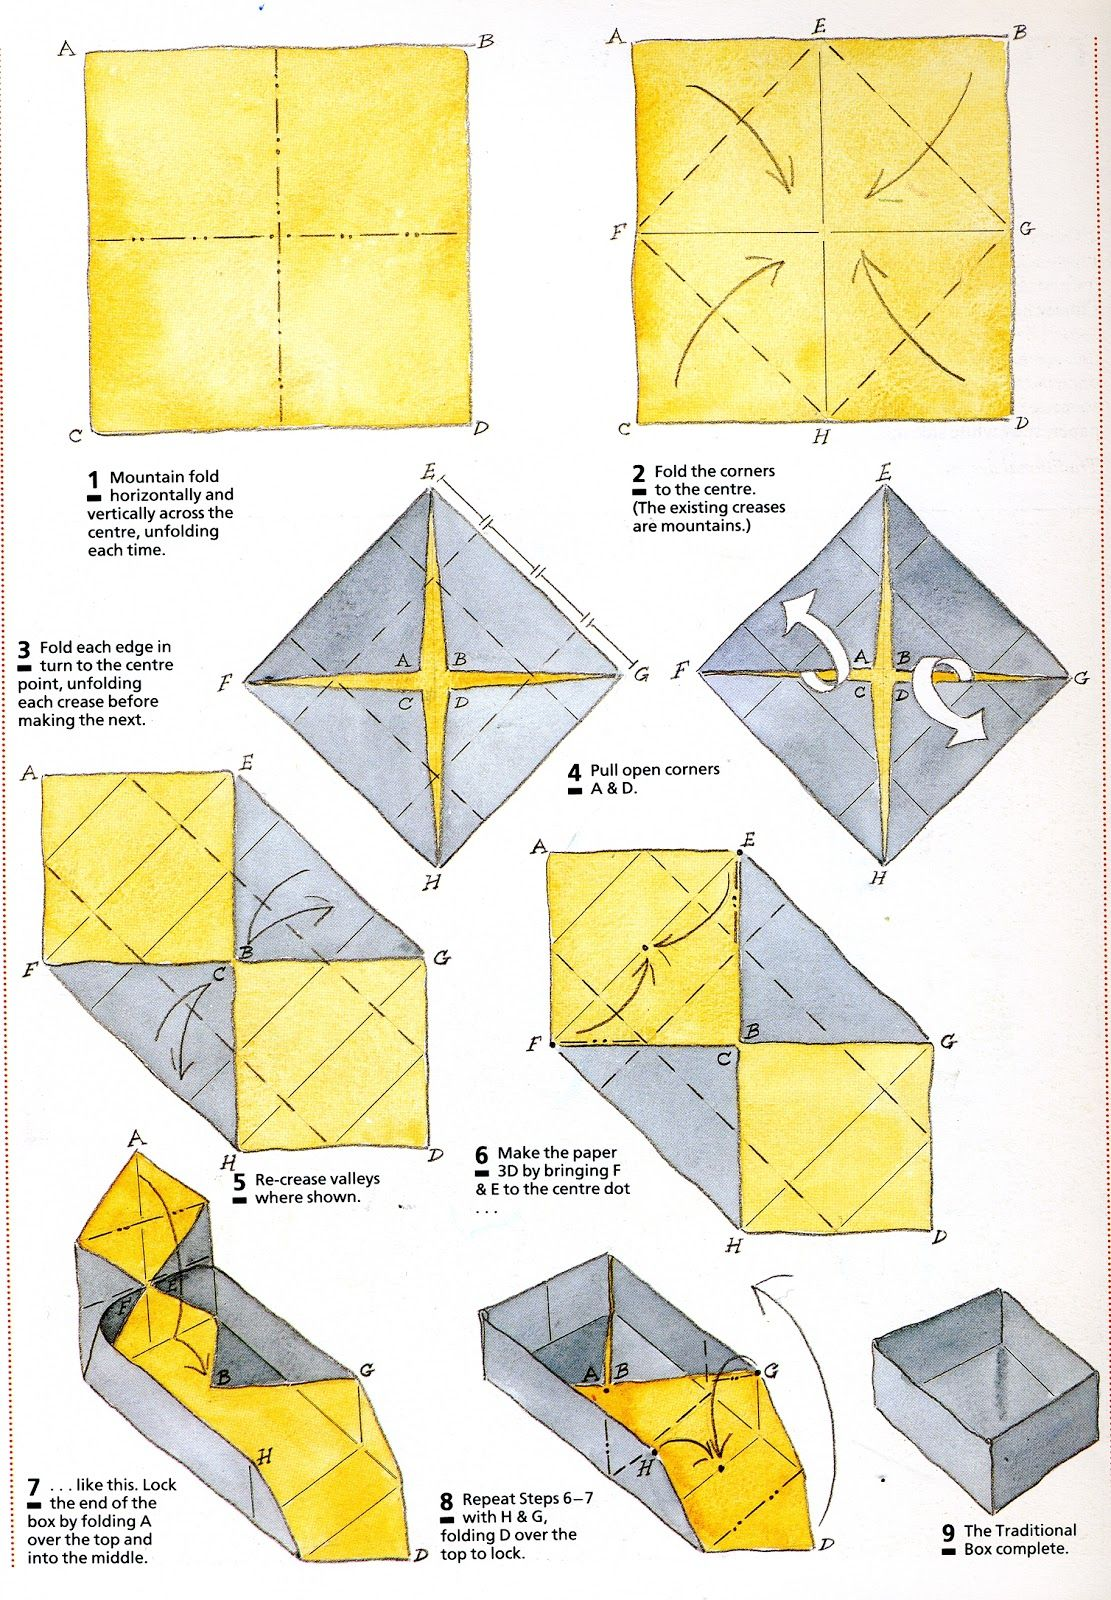 medium resolution of how to make a origami rectangle box instructions folding origami boxby step easy origami flower instructions origami heart origami heart box instructions